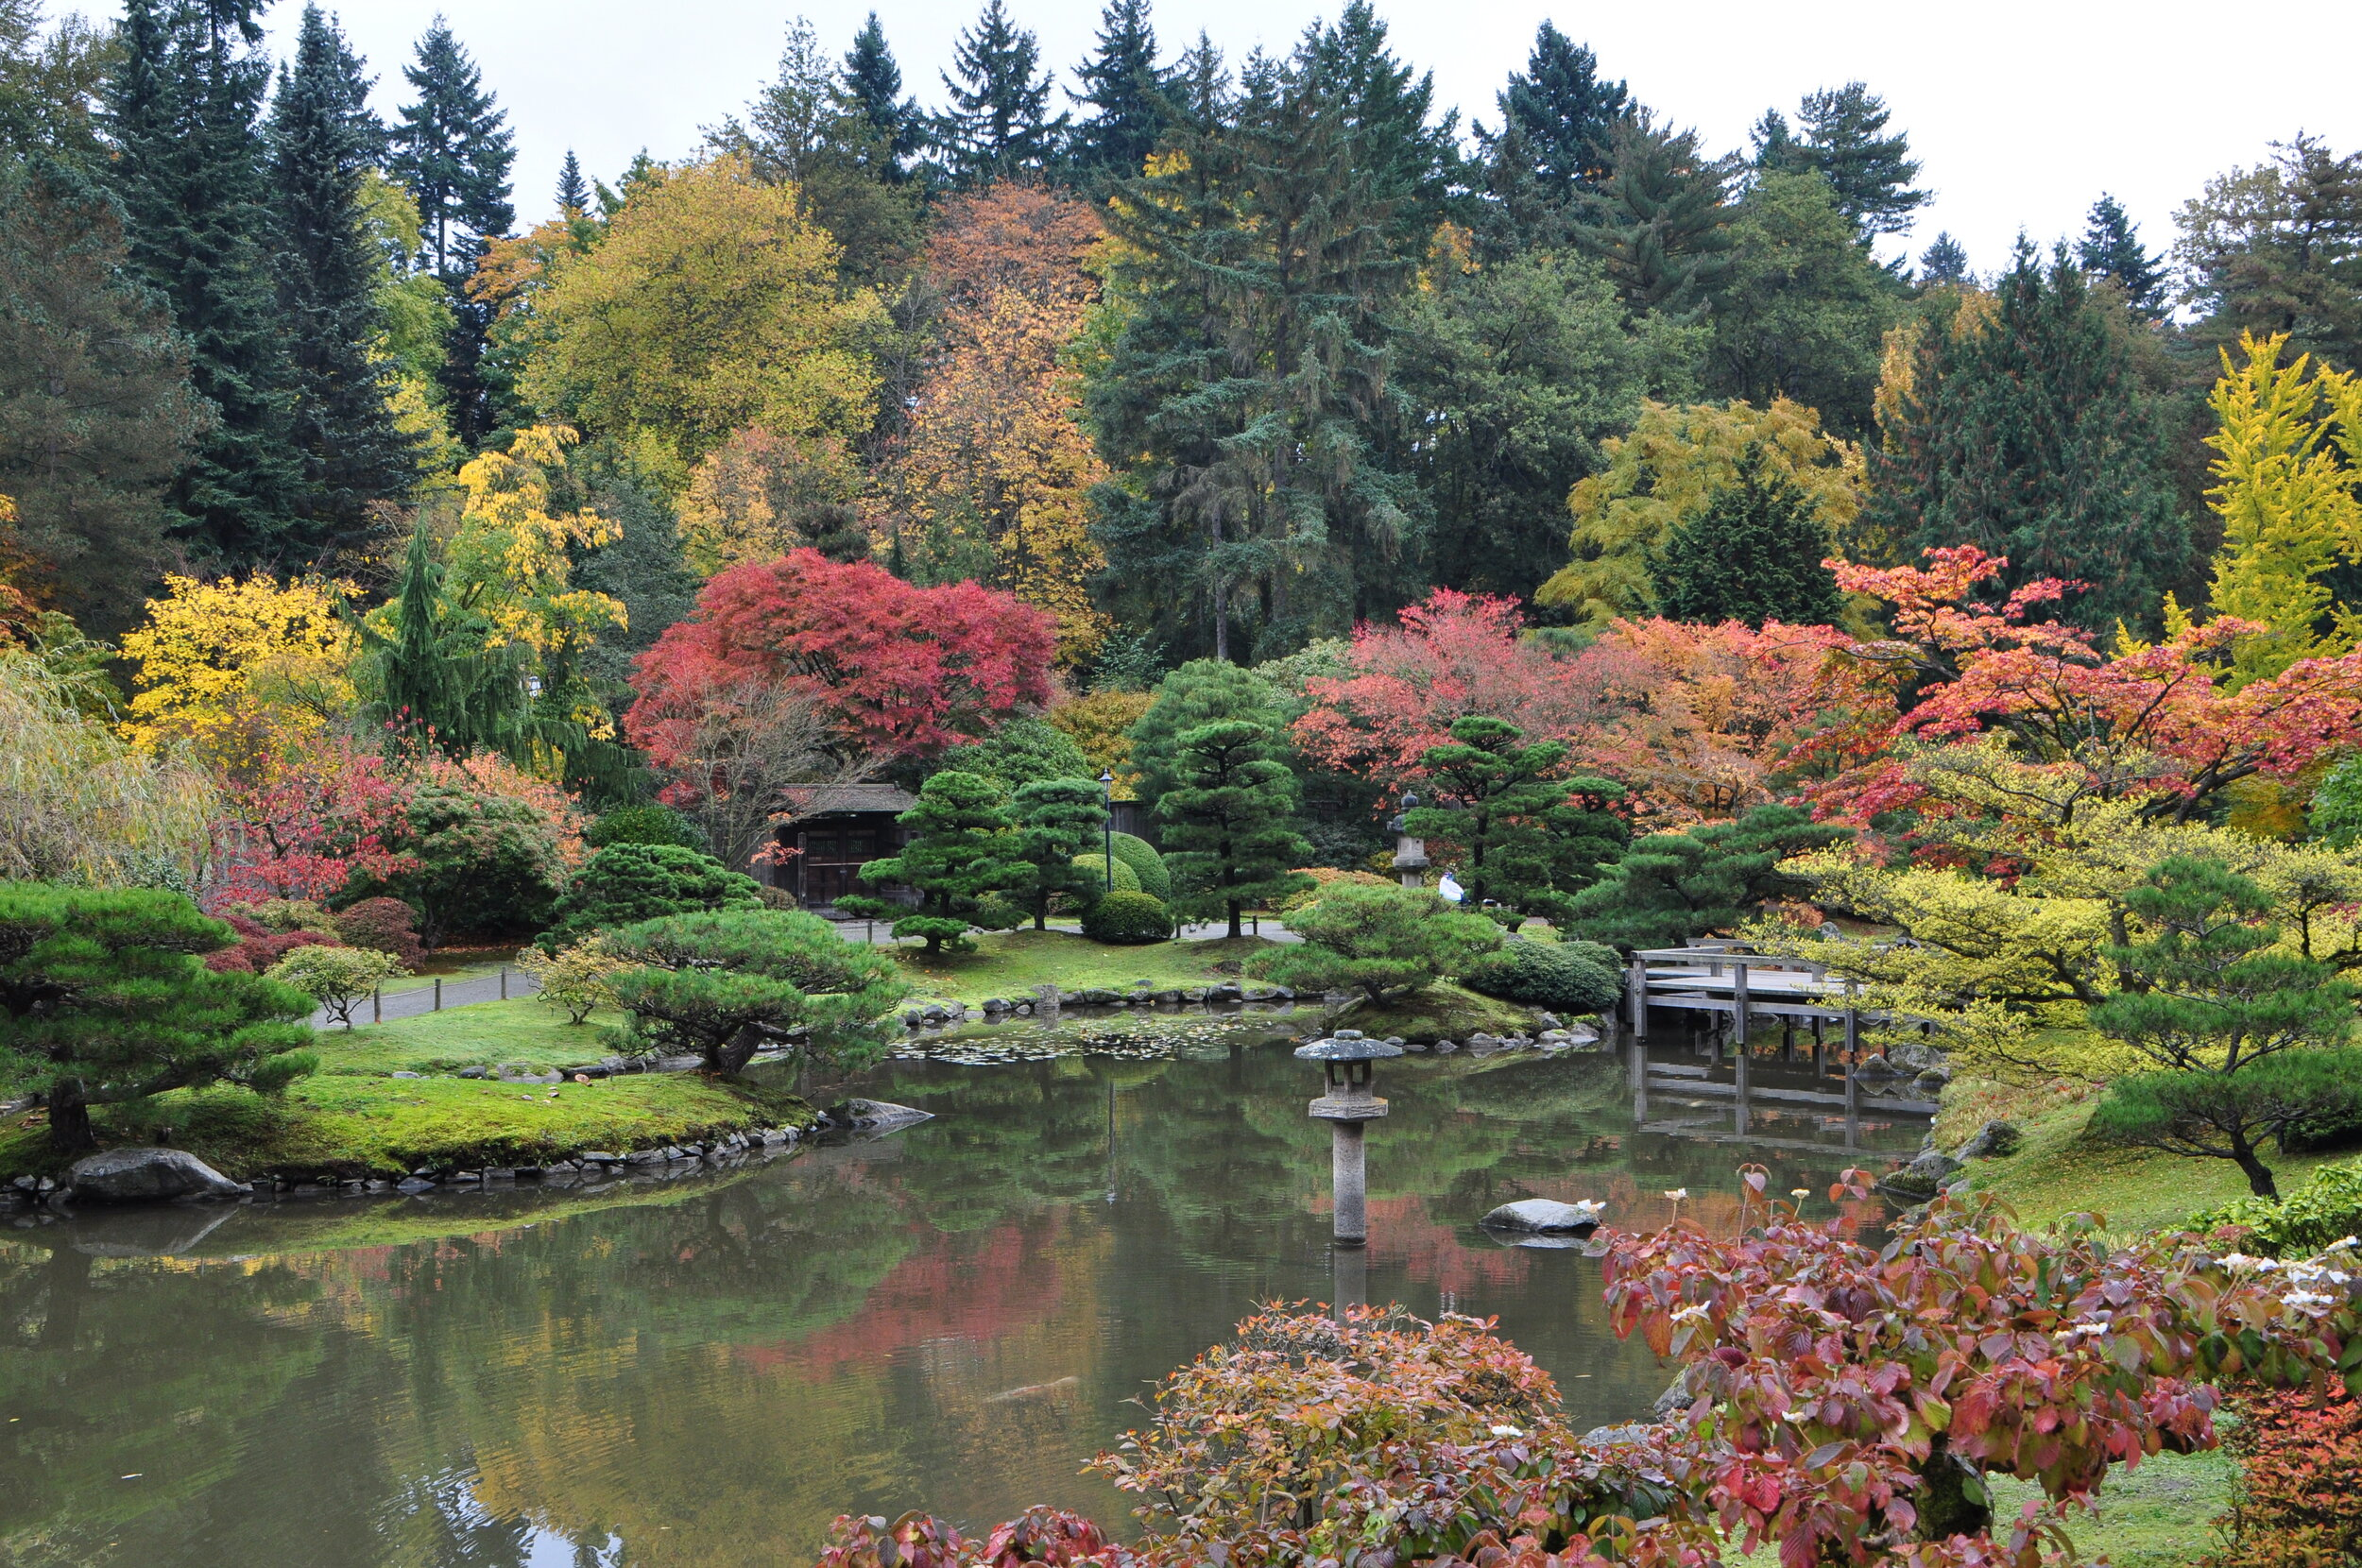 The Seattle Japanese Garden is a stroll garden, with a central pond and a gravel path that winds around it. (photo: 2011, Creative Commons Attribution-Share Alike 2.0 Generic license)